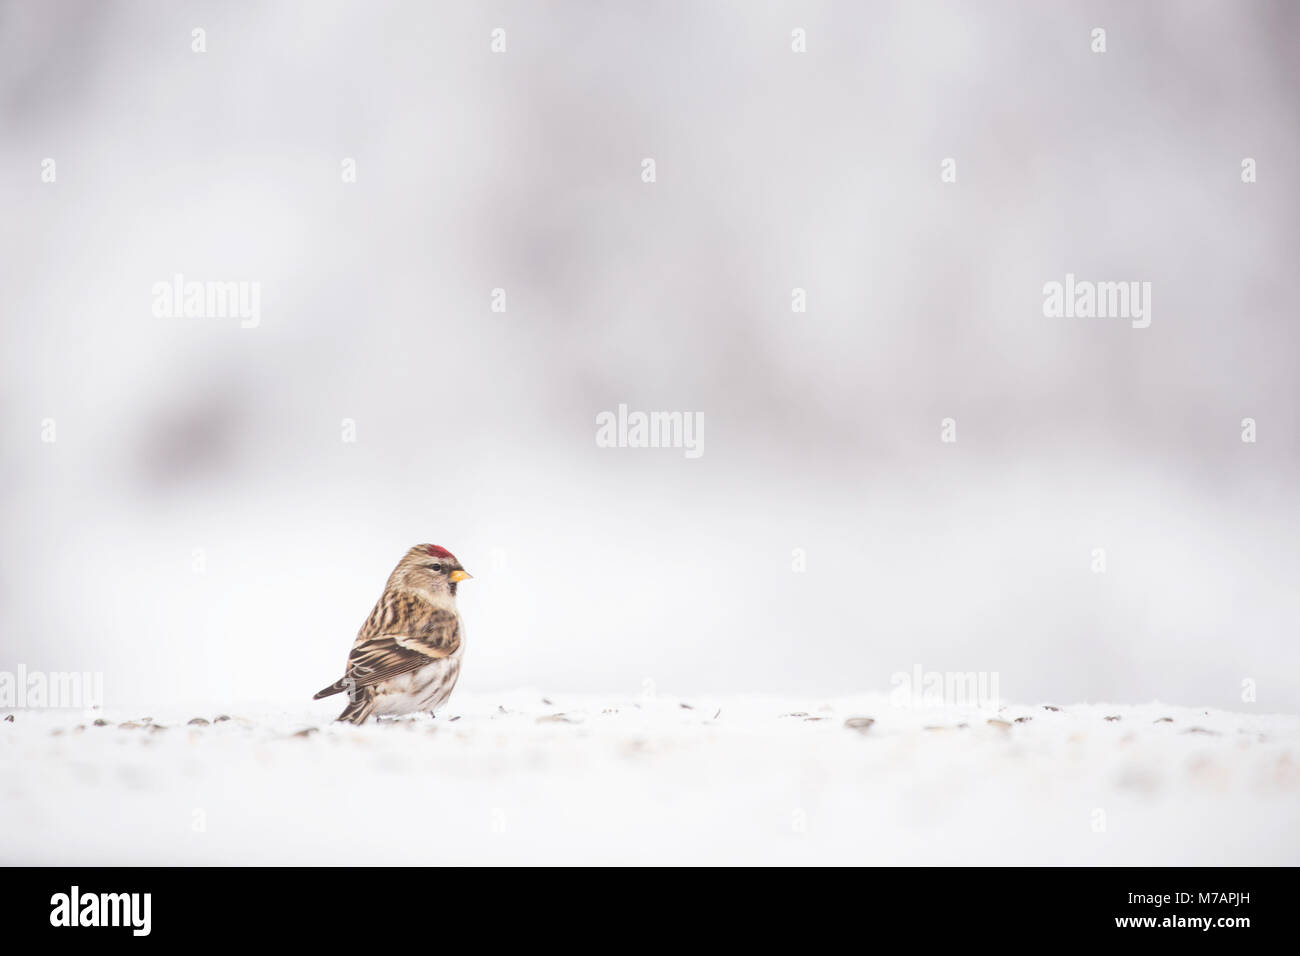 Common Redpoll on snow, blurred background - Stock Image